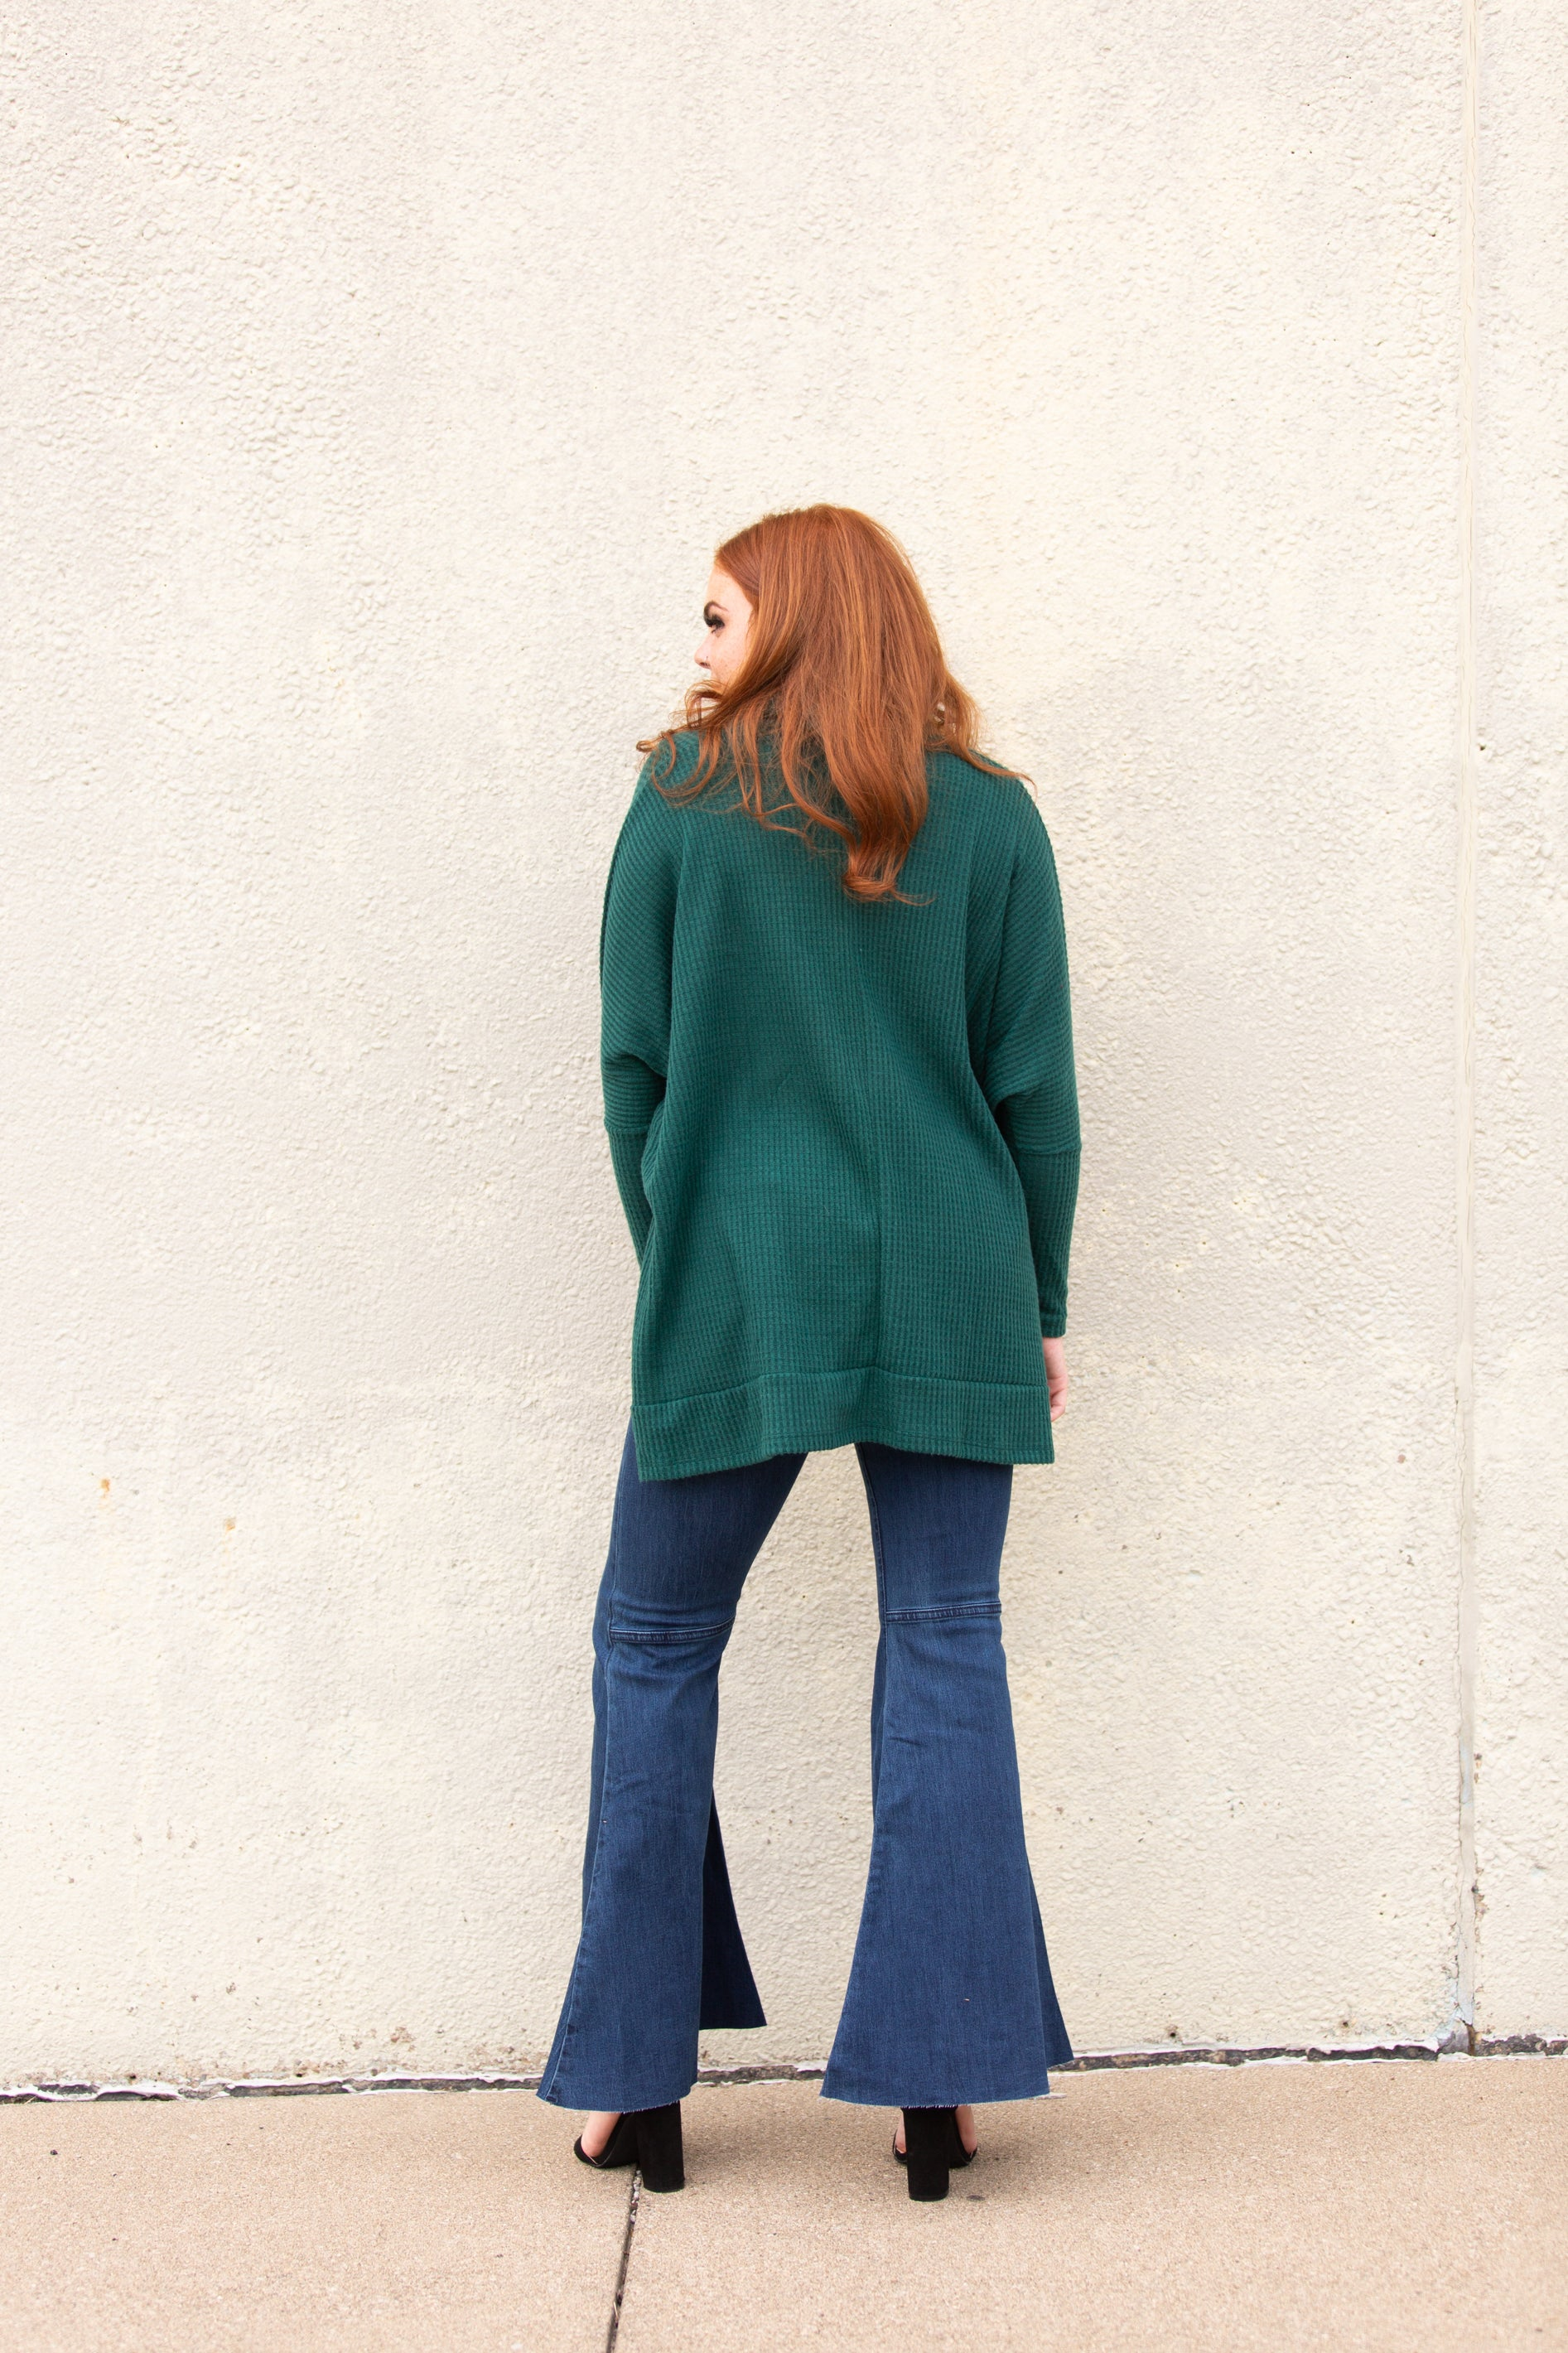 Feelings For You Emerald Cowl Neck Poncho Sweater - impromptu boutique